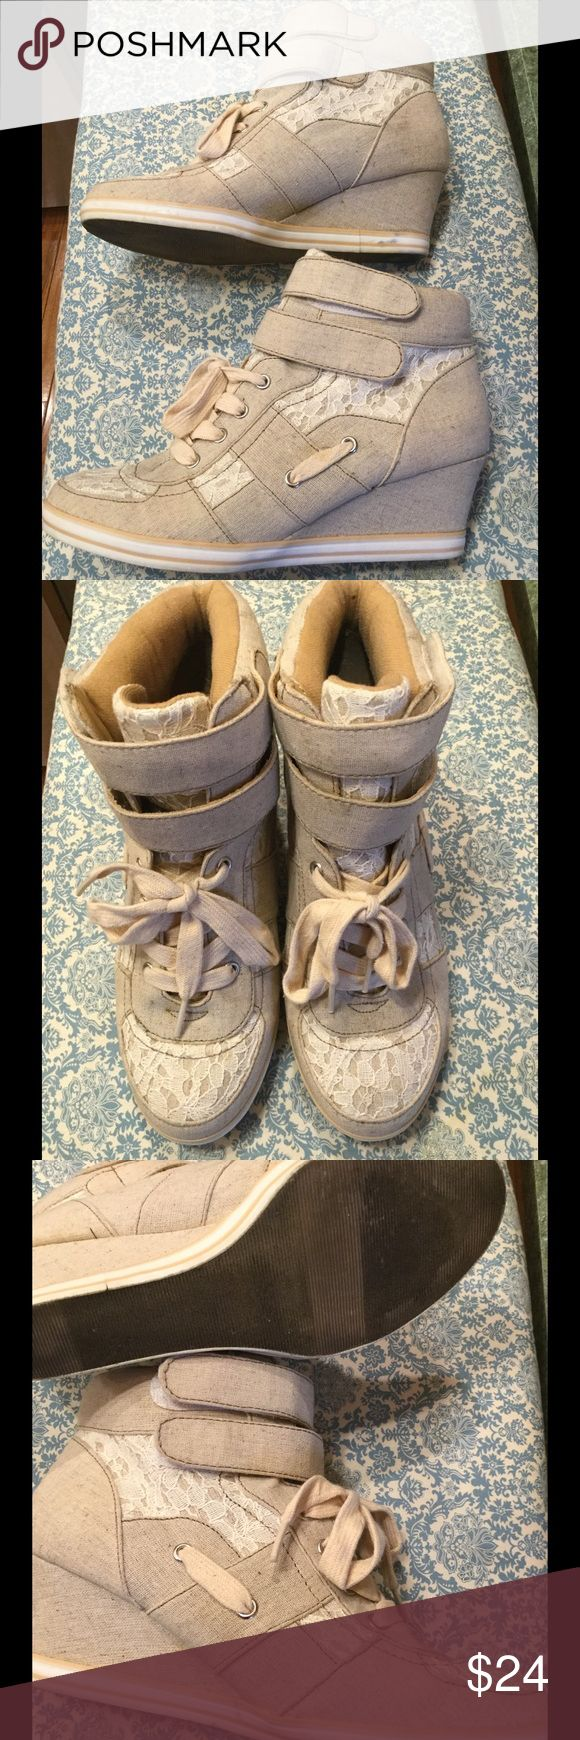 Canvas Wedge Booties with Lace In excellent condition, hardly any signs of any wear.  Comfortable wedge sneaker type shoe.  Canvas and lace embellished. jellypop Shoes Ankle Boots & Booties